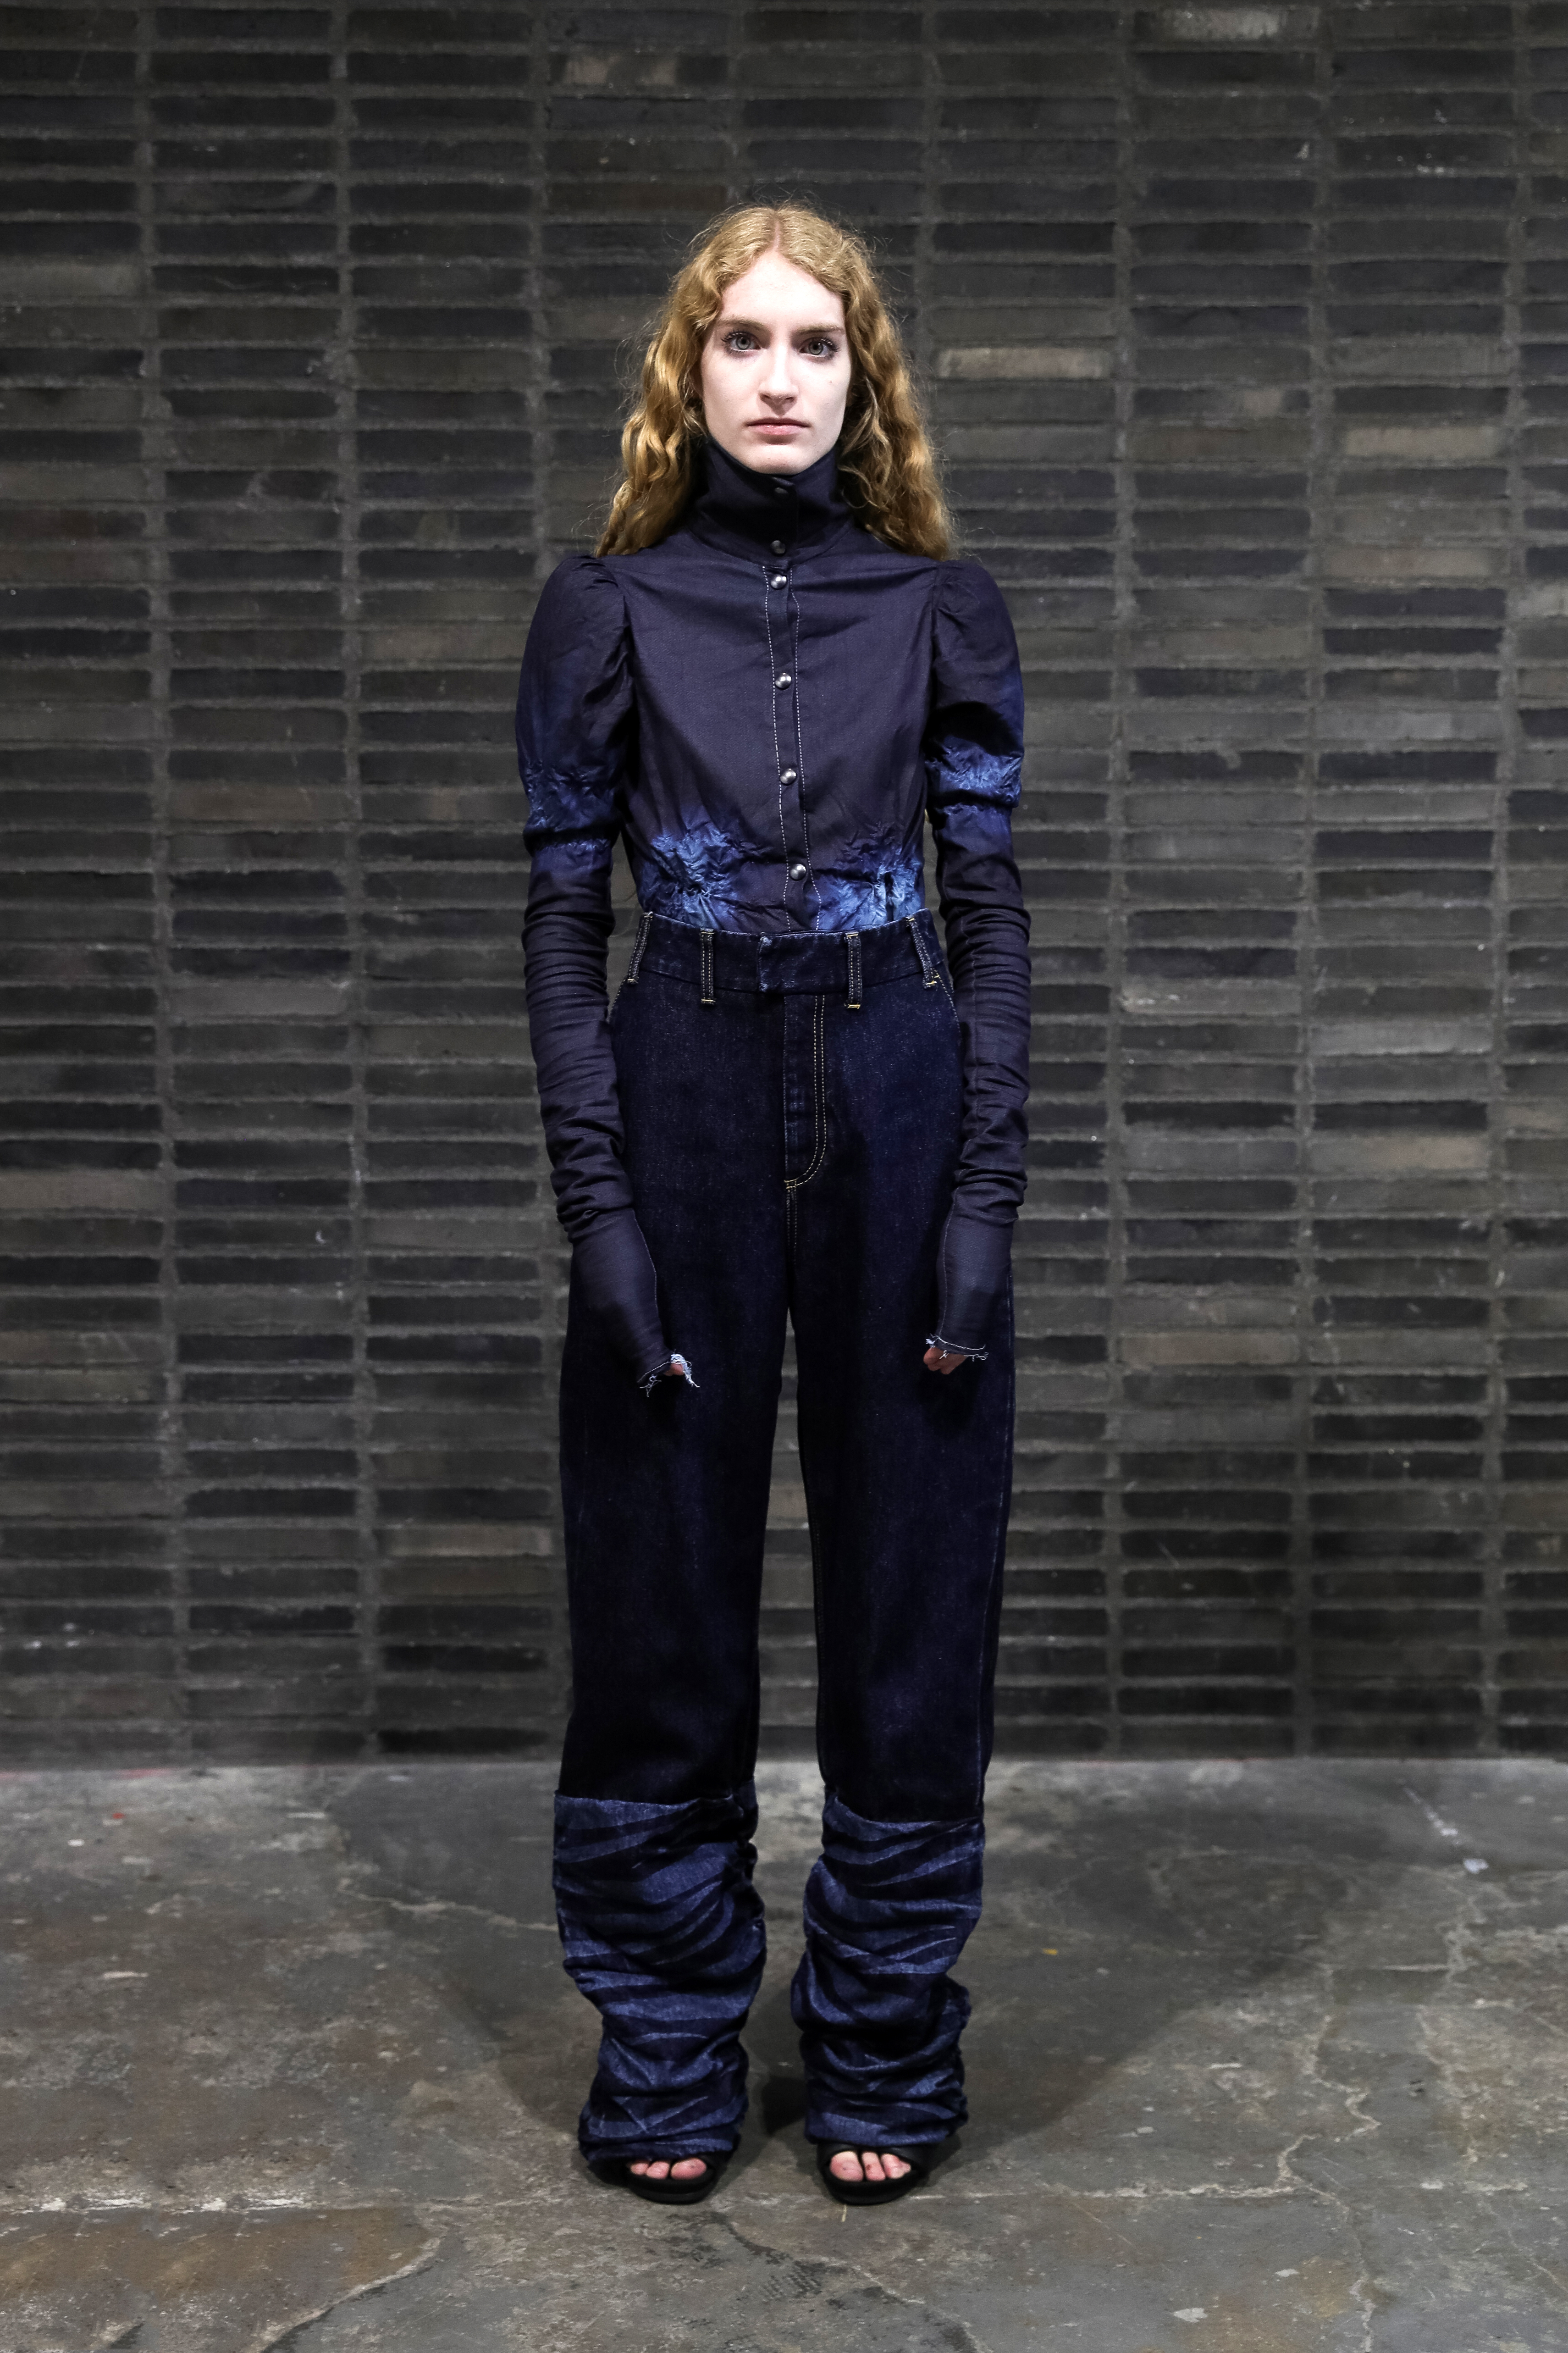 Francesca Girardelli from IED Milan -